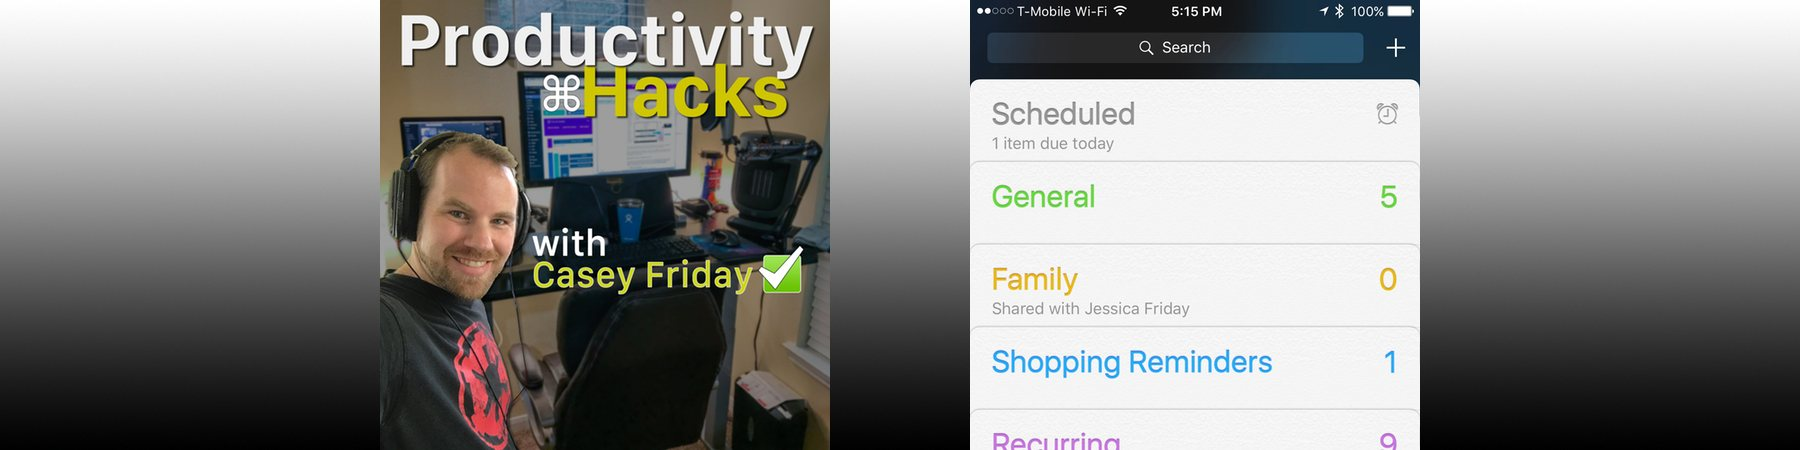 02 iOS Reminders - Hacking Your Productivity with Casey Friday